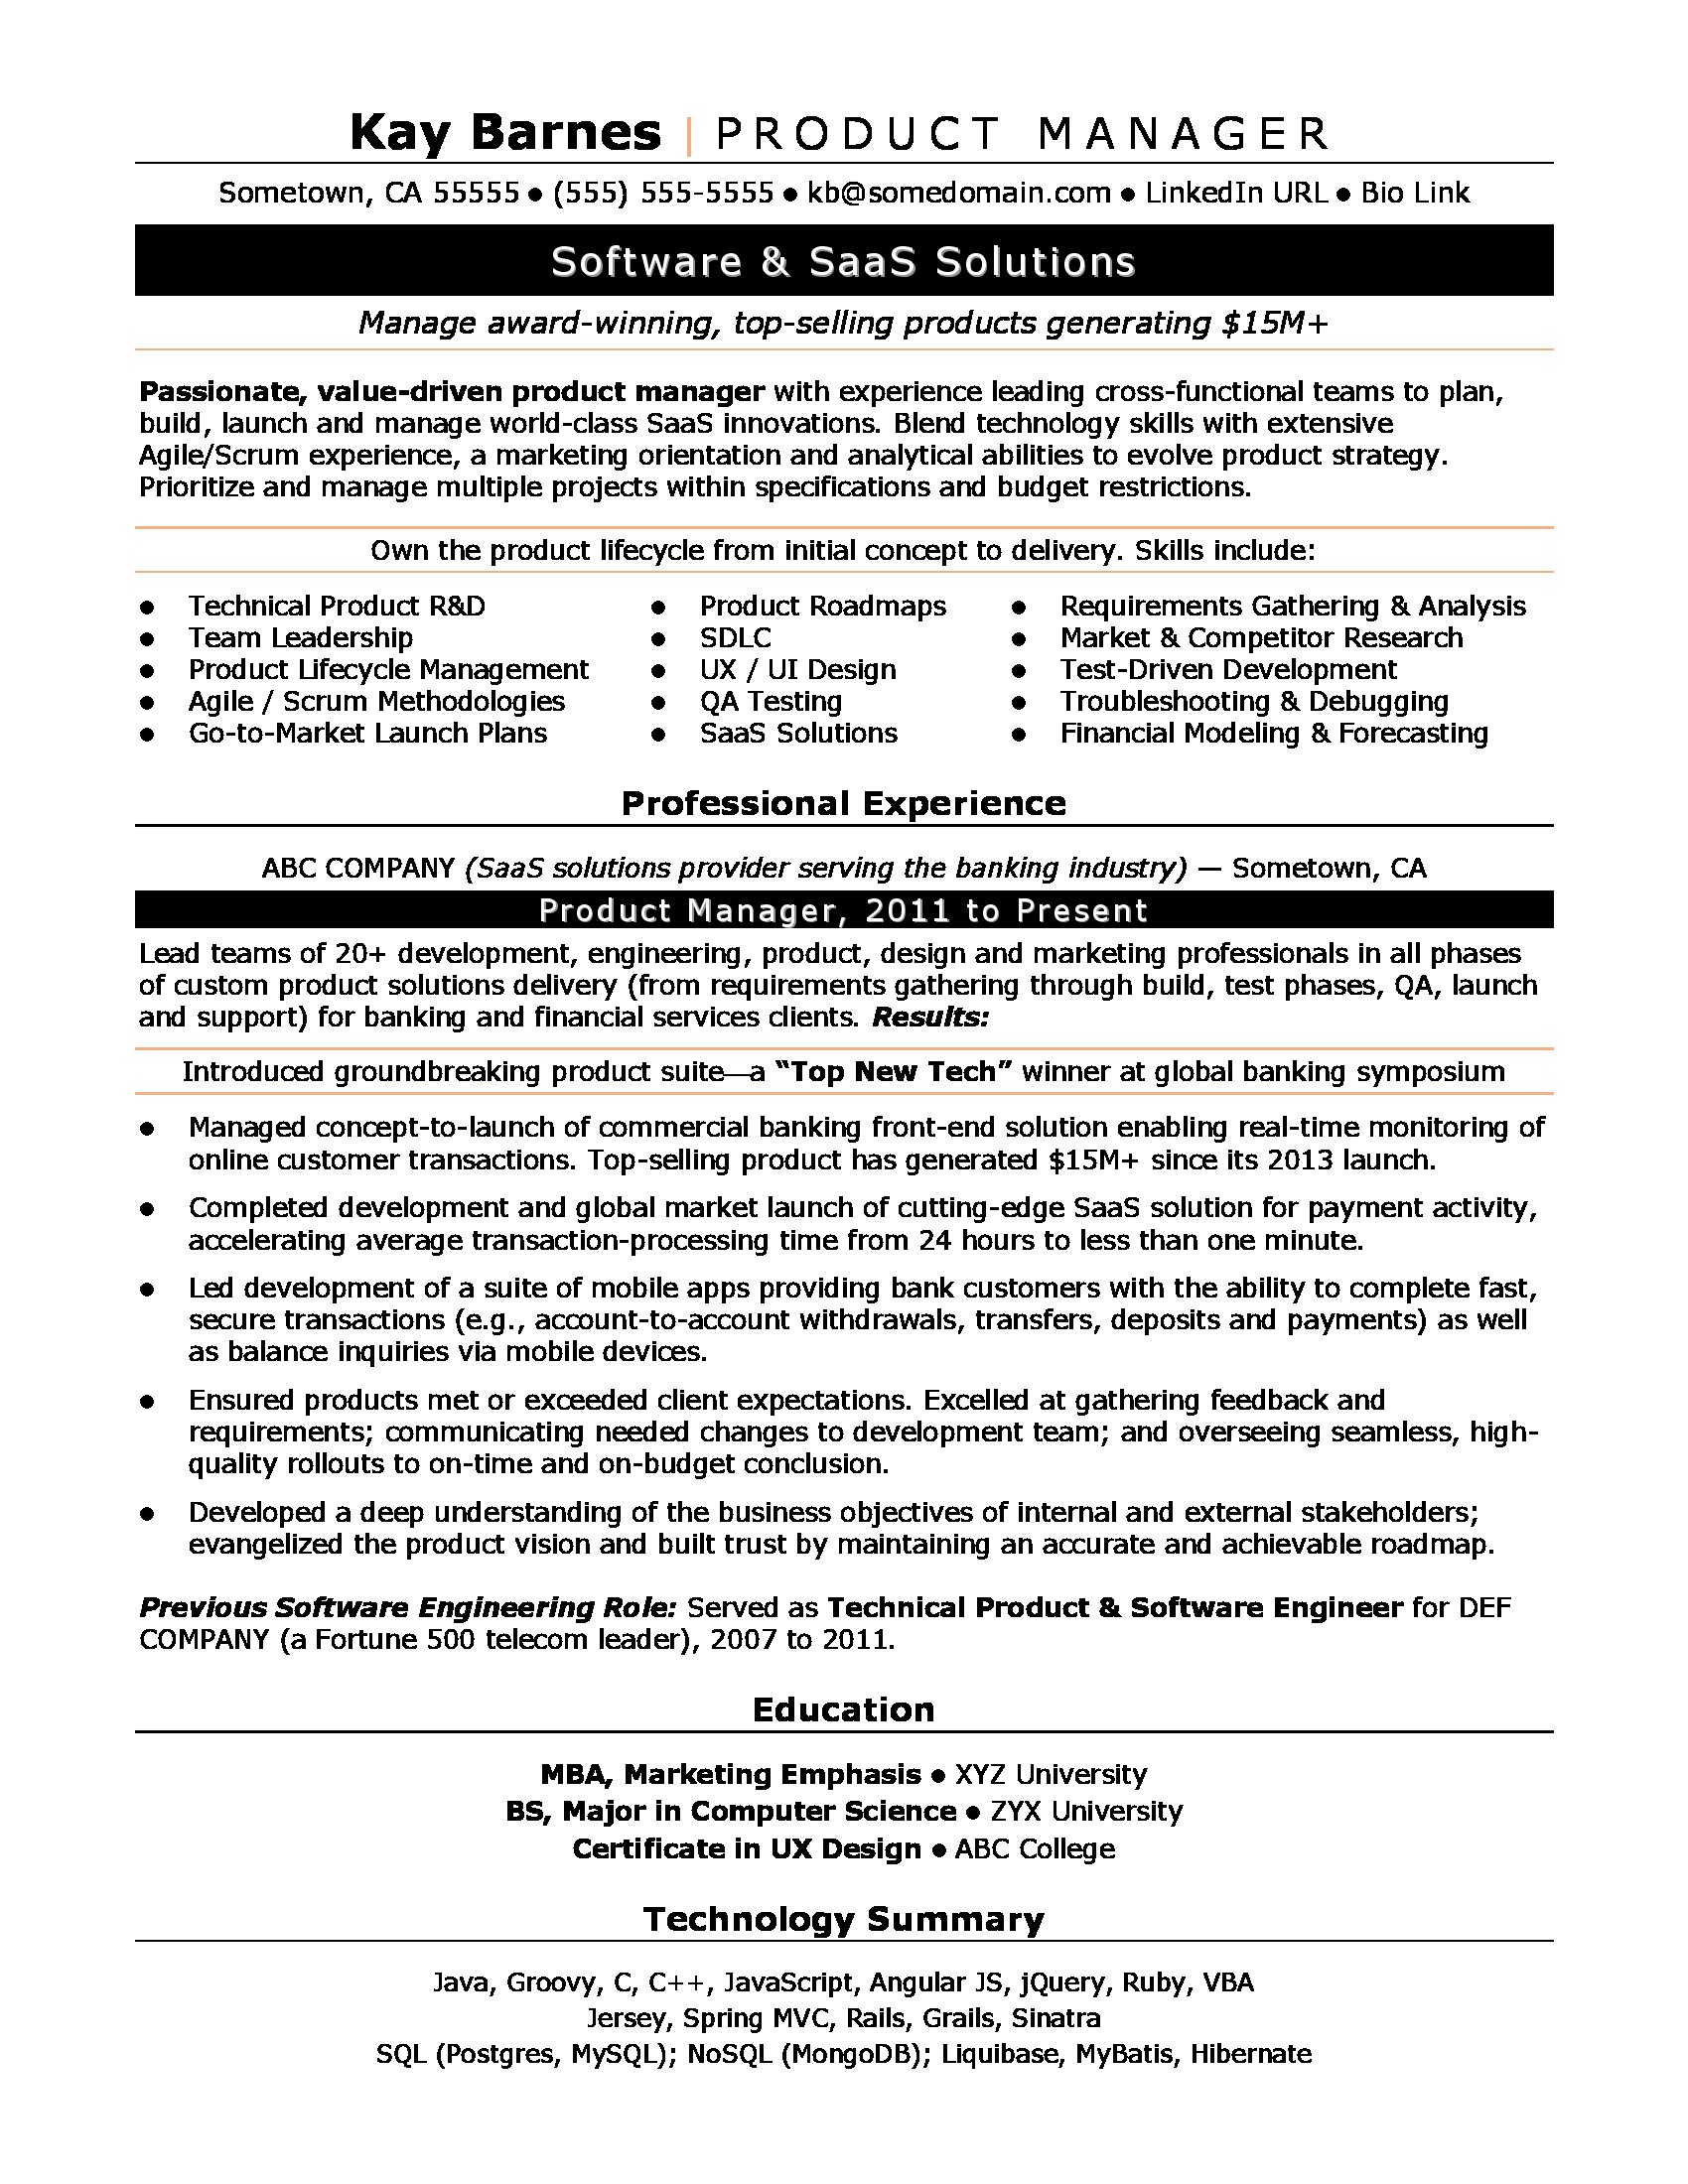 product manager resume sample monster value based examples productmanager professional Resume Value Based Resume Examples